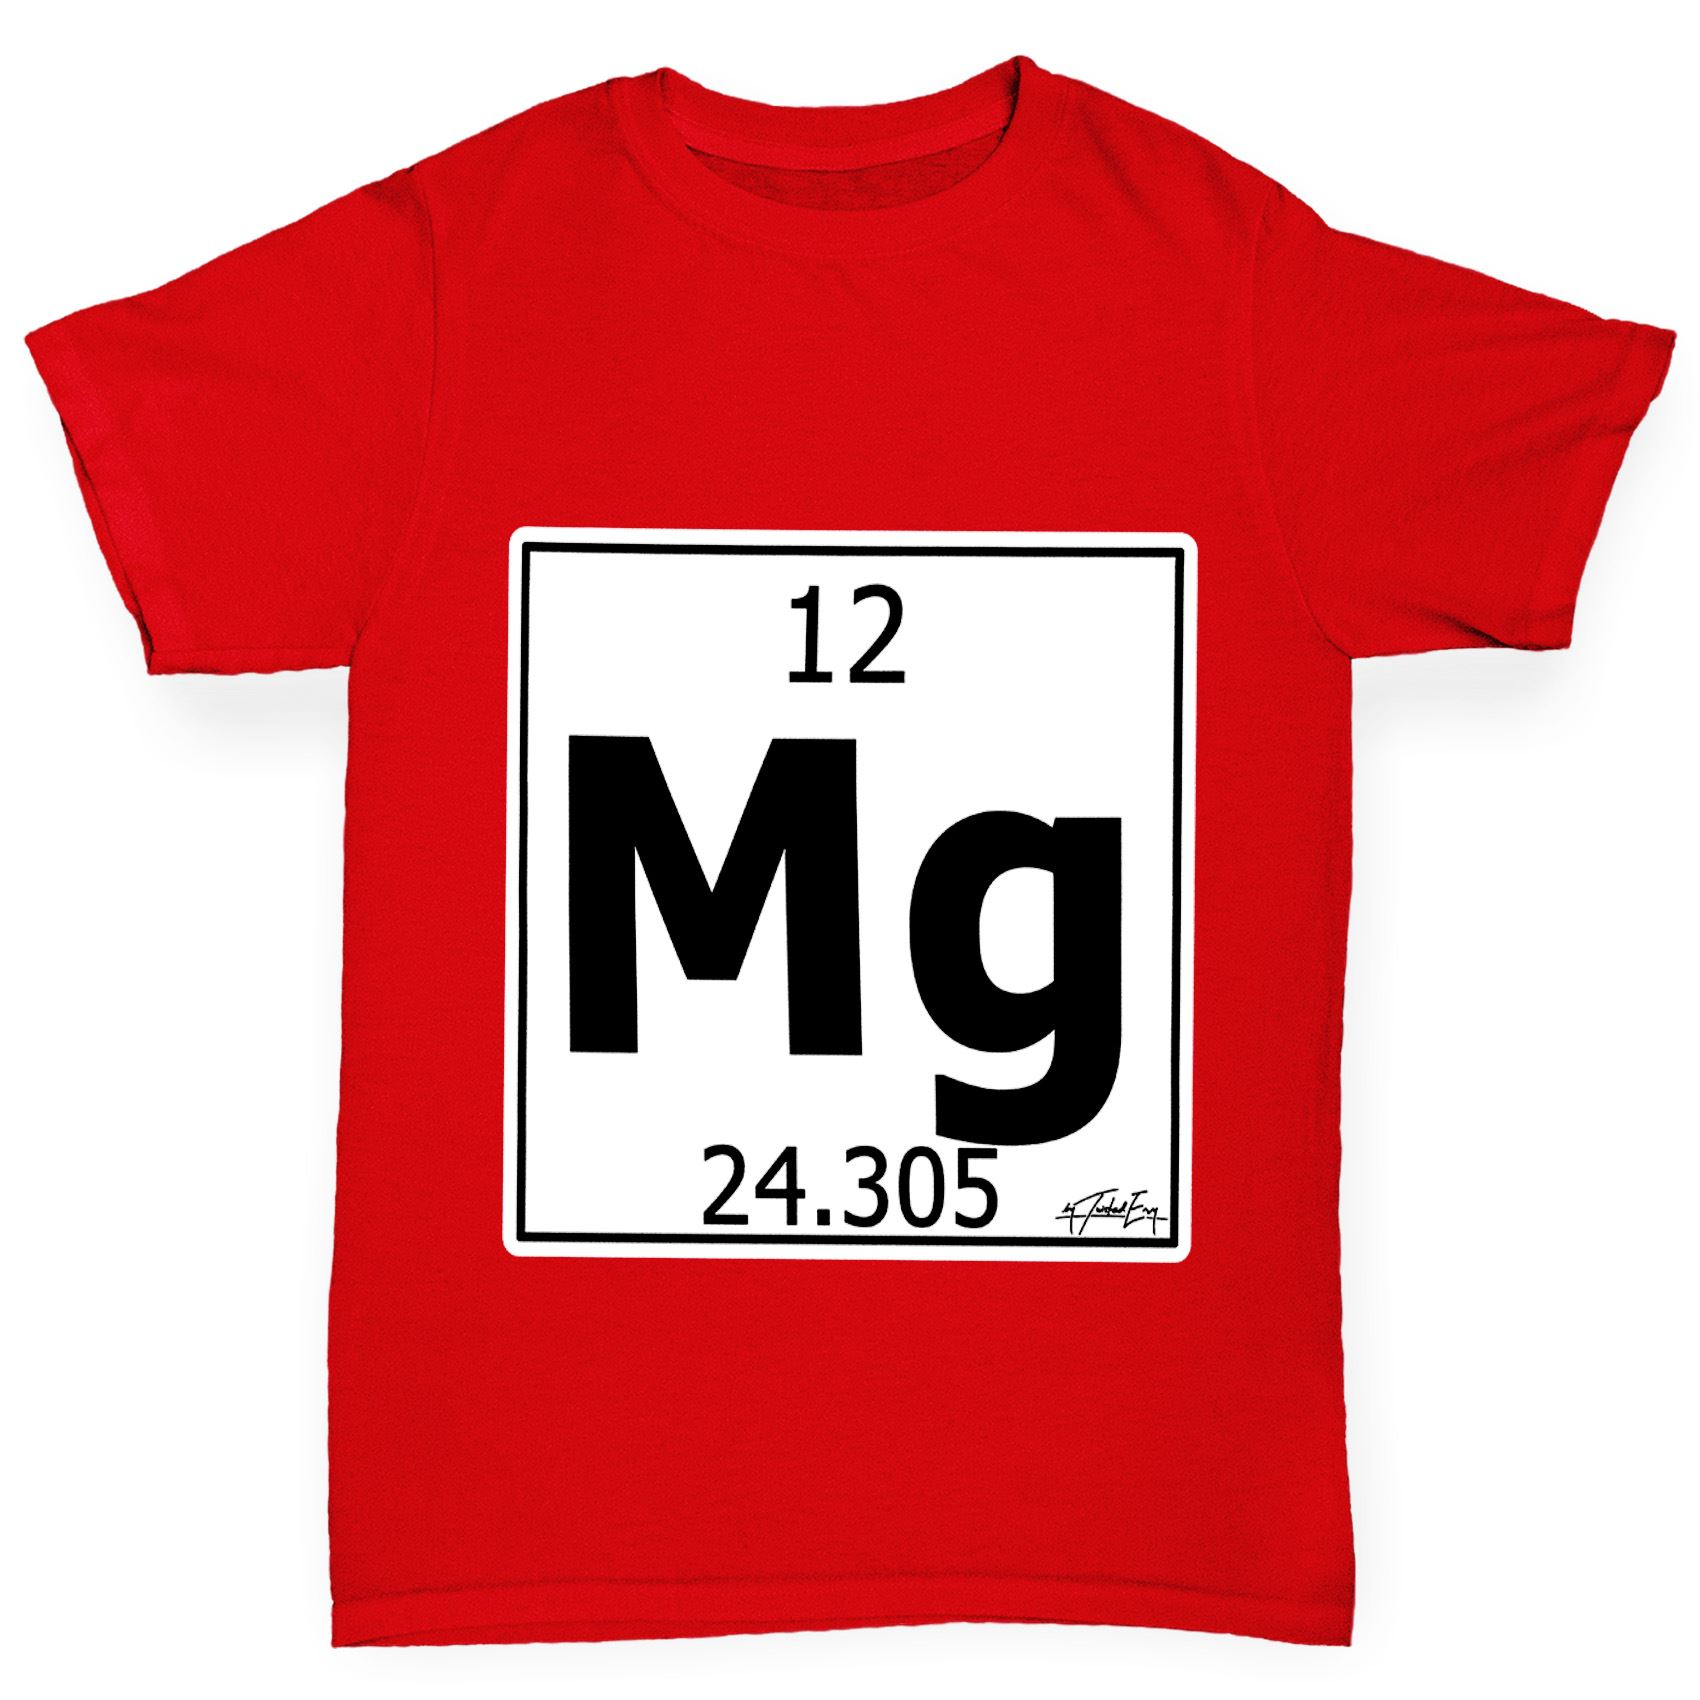 Twisted envy boys periodic table element mg magnesium t shirt ebay twisted envy boy 039 s periodic table element gamestrikefo Gallery